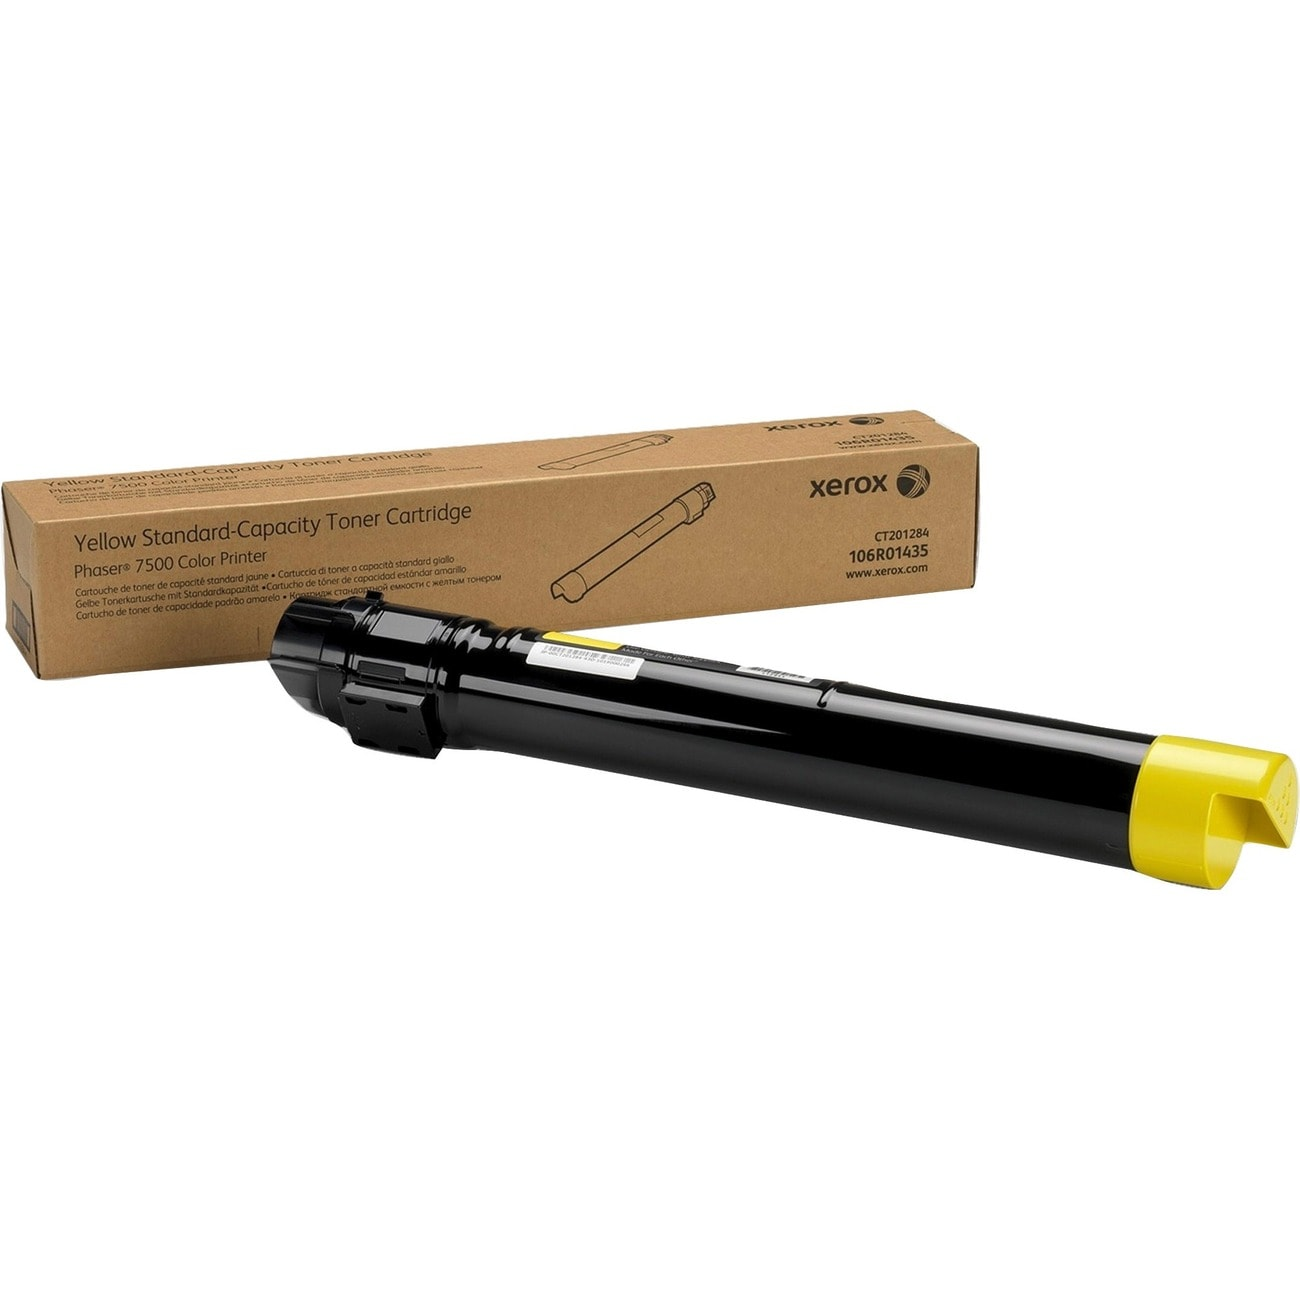 Xerox Yellow Laser Toner Cartridge